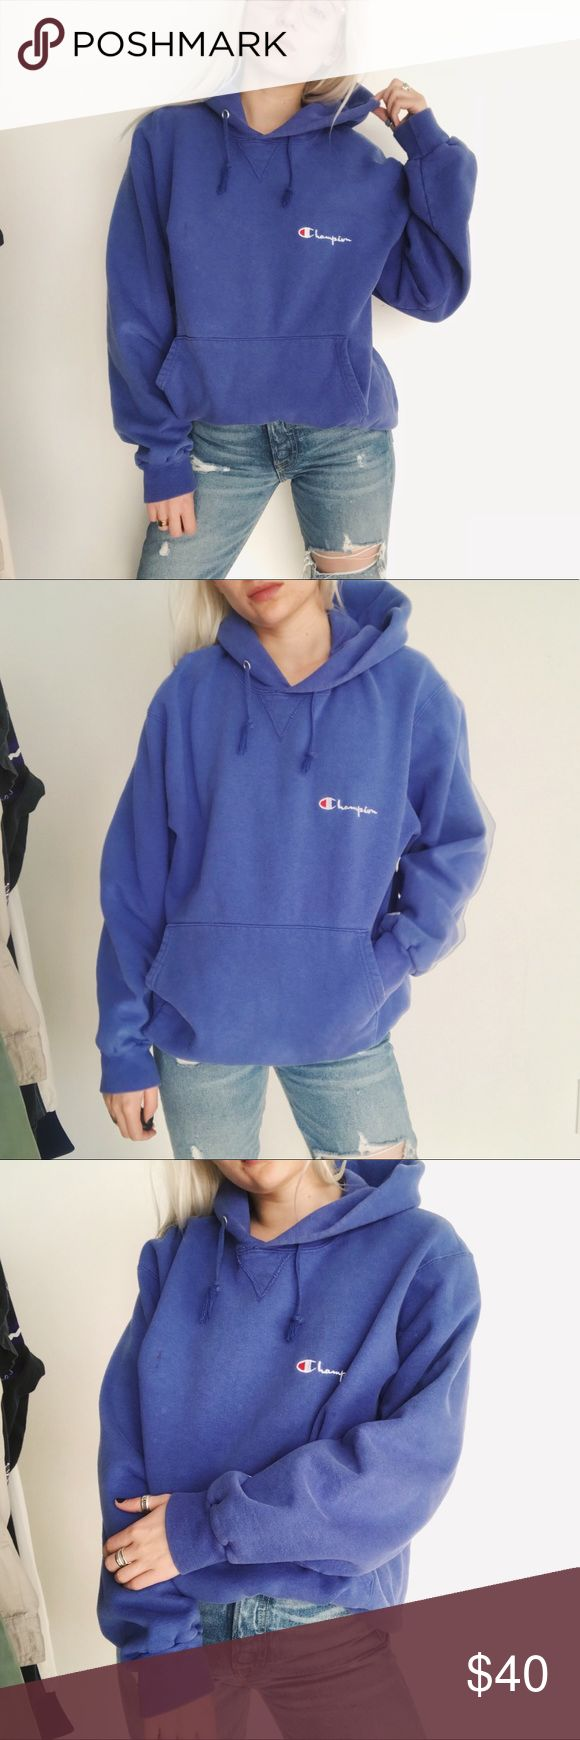 • vintage blue champion hoodie • the PERFECT ultra coxy vintage champion hoodie! faded blue. champion logo on sleeve 💘  * marked a size large  * 100% cotton   ❣ ABSOLUTELY NO PP OR TRADES ❣ ⭐️ model is 5'3 and typically a XS ⭐️ Champion Jackets & Coats